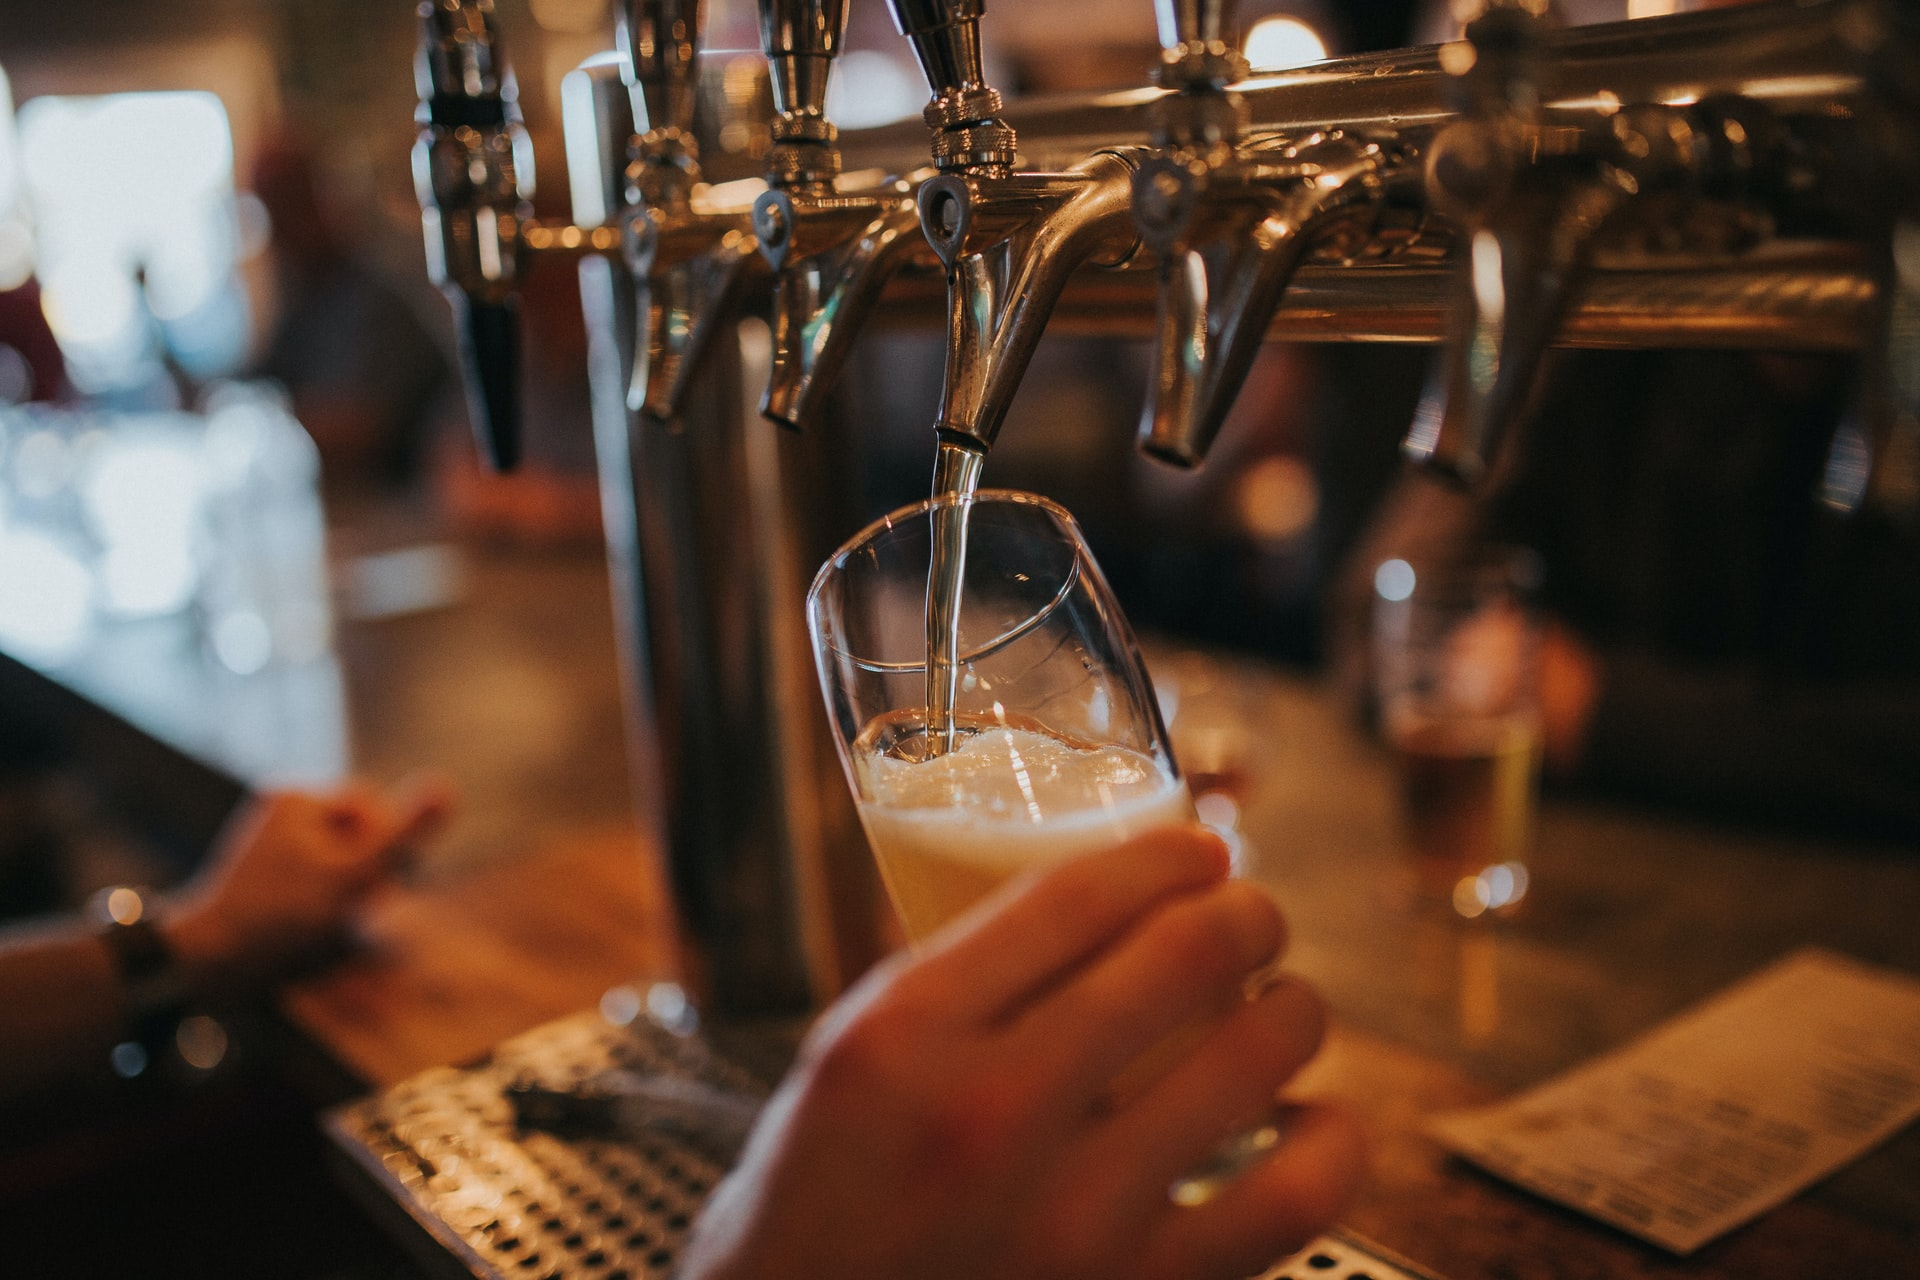 Sip a Belgian Ale at Barrel of Monks Brewery